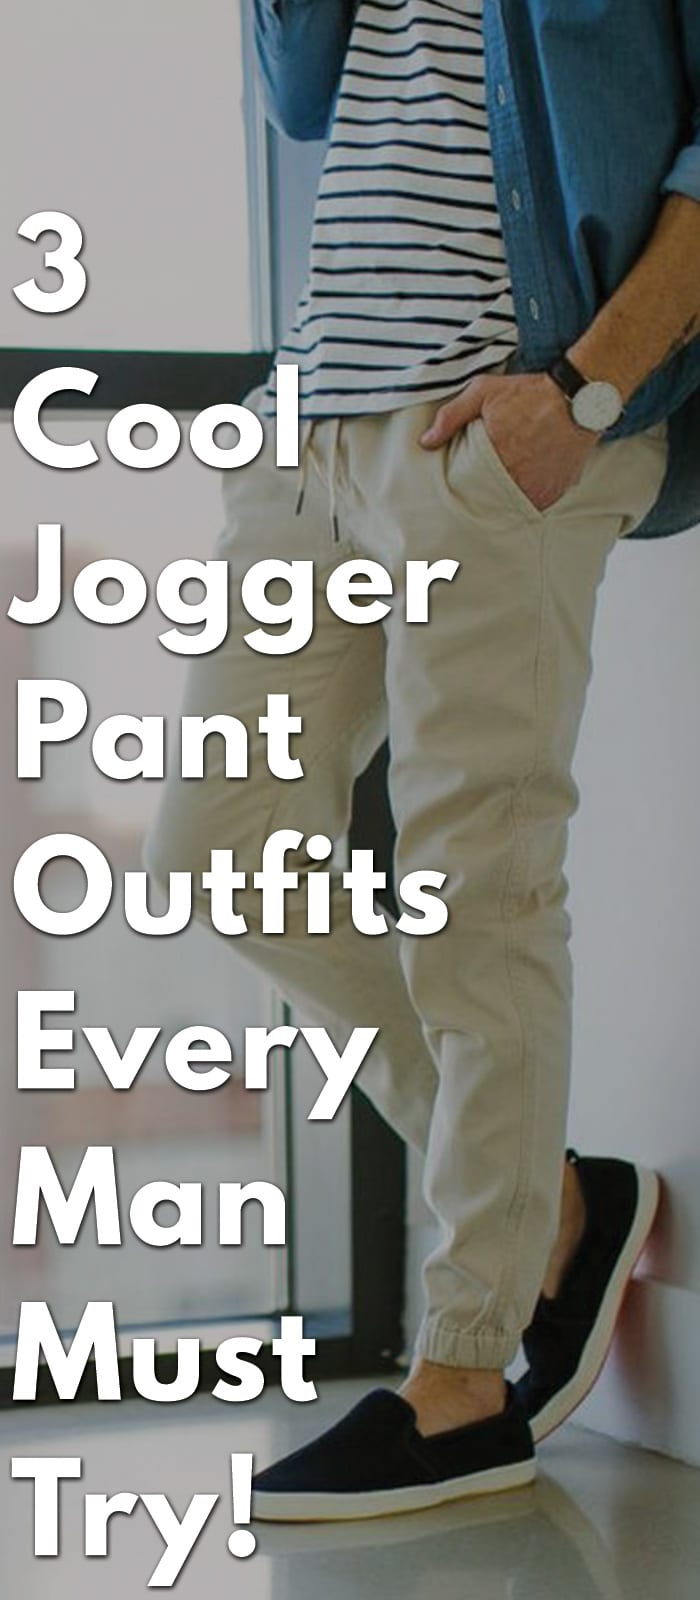 3-Cool-Jogger-Pant-Outfits-Every-Man-Must-Try!